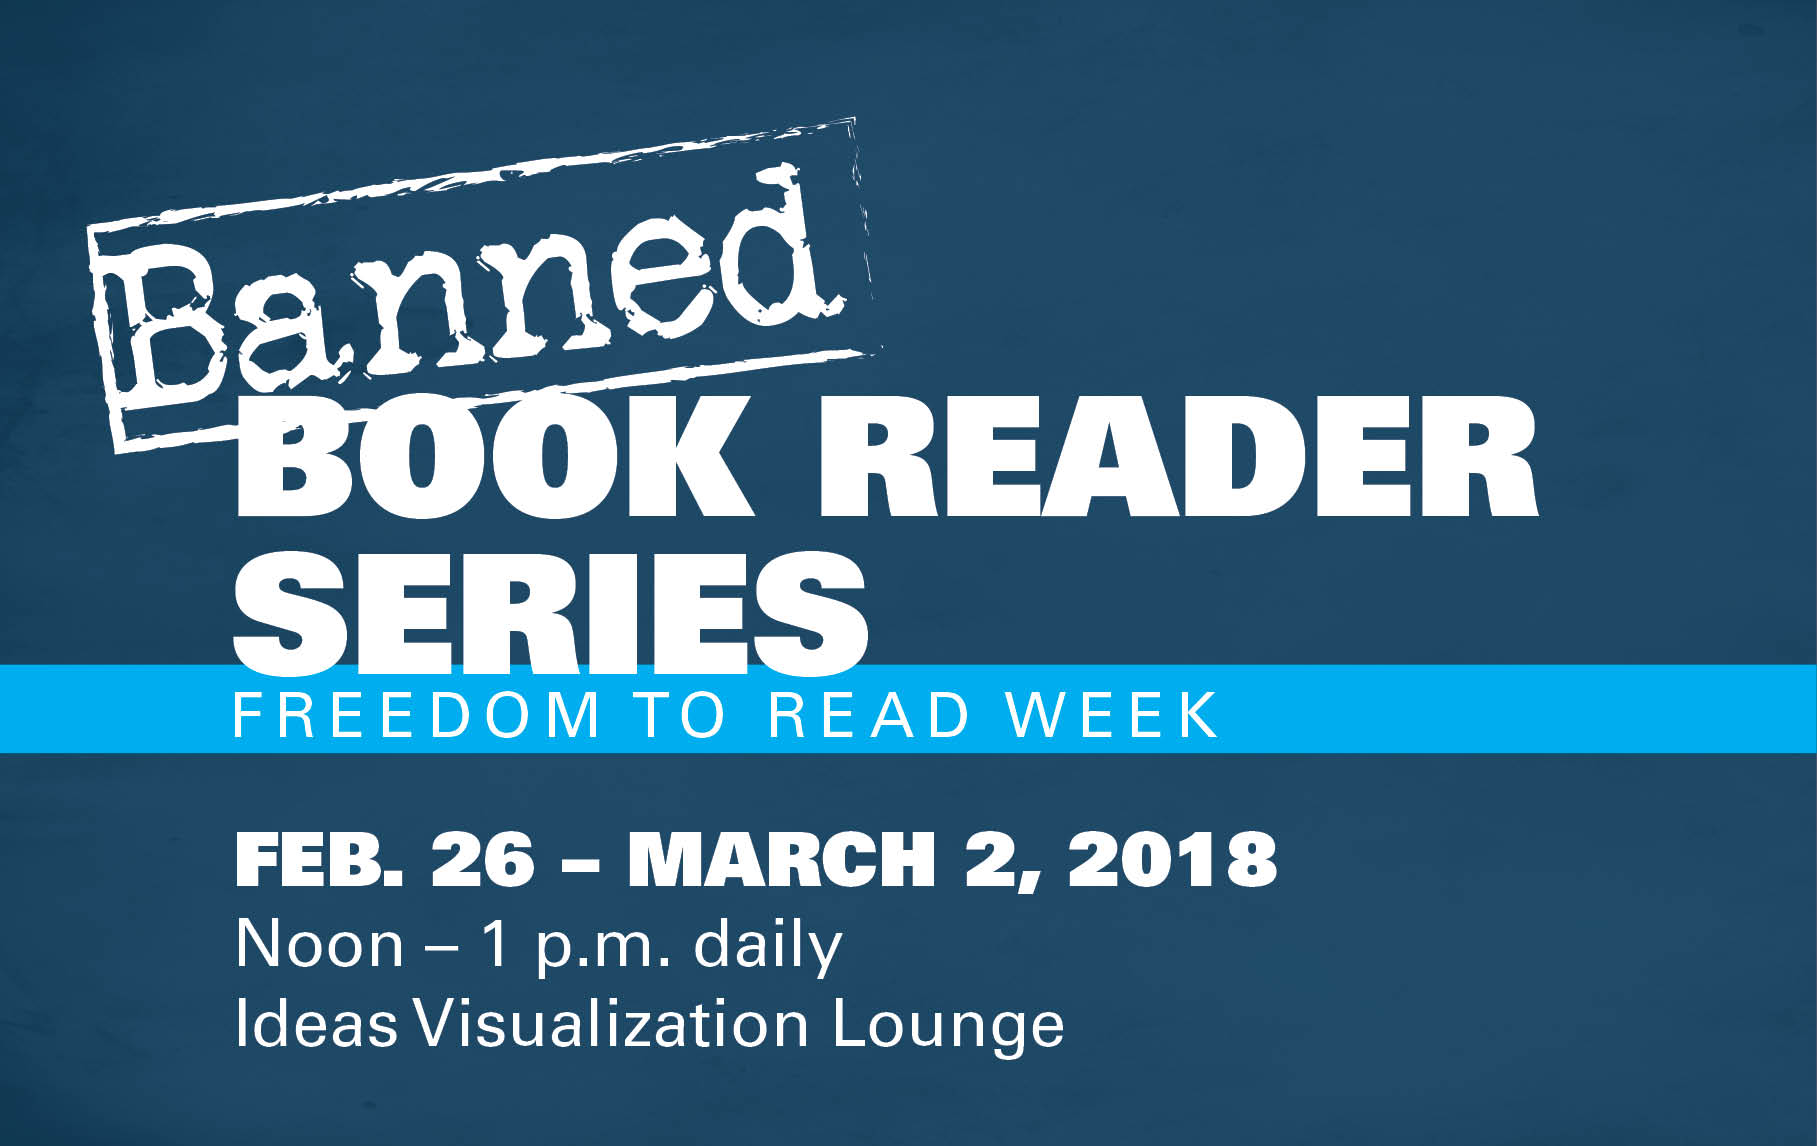 freedom to read week